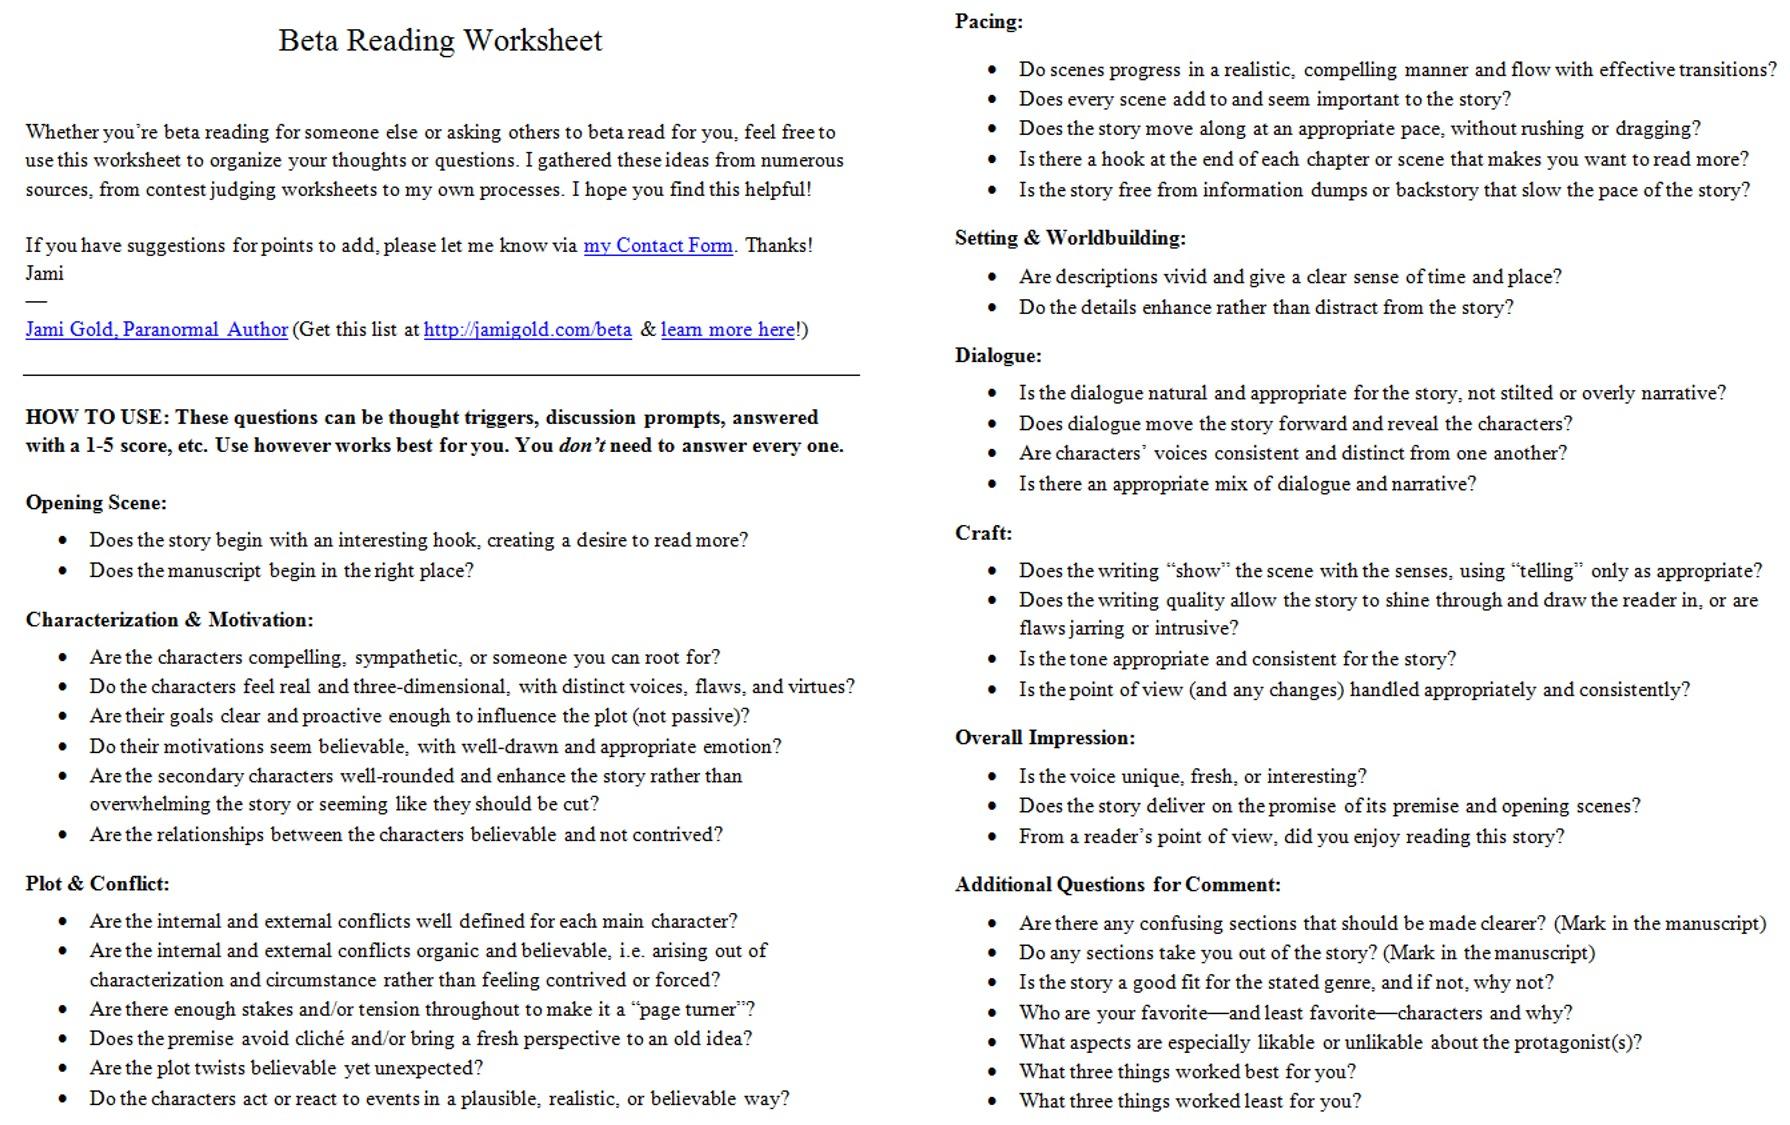 Weirdmailus  Wonderful Worksheets For Writers  Jami Gold Paranormal Author With Engaging Screen Shot Of The Twopage Beta Reading Worksheet With Appealing Kindergarten Reading Worksheets Sight Words Also Theoretical And Experimental Probability Worksheets In Addition Isomers Worksheet And Proportions And Similar Triangles Worksheet As Well As Protein Synthesis Worksheets Additionally Budget Helper Worksheet From Jamigoldcom With Weirdmailus  Engaging Worksheets For Writers  Jami Gold Paranormal Author With Appealing Screen Shot Of The Twopage Beta Reading Worksheet And Wonderful Kindergarten Reading Worksheets Sight Words Also Theoretical And Experimental Probability Worksheets In Addition Isomers Worksheet From Jamigoldcom